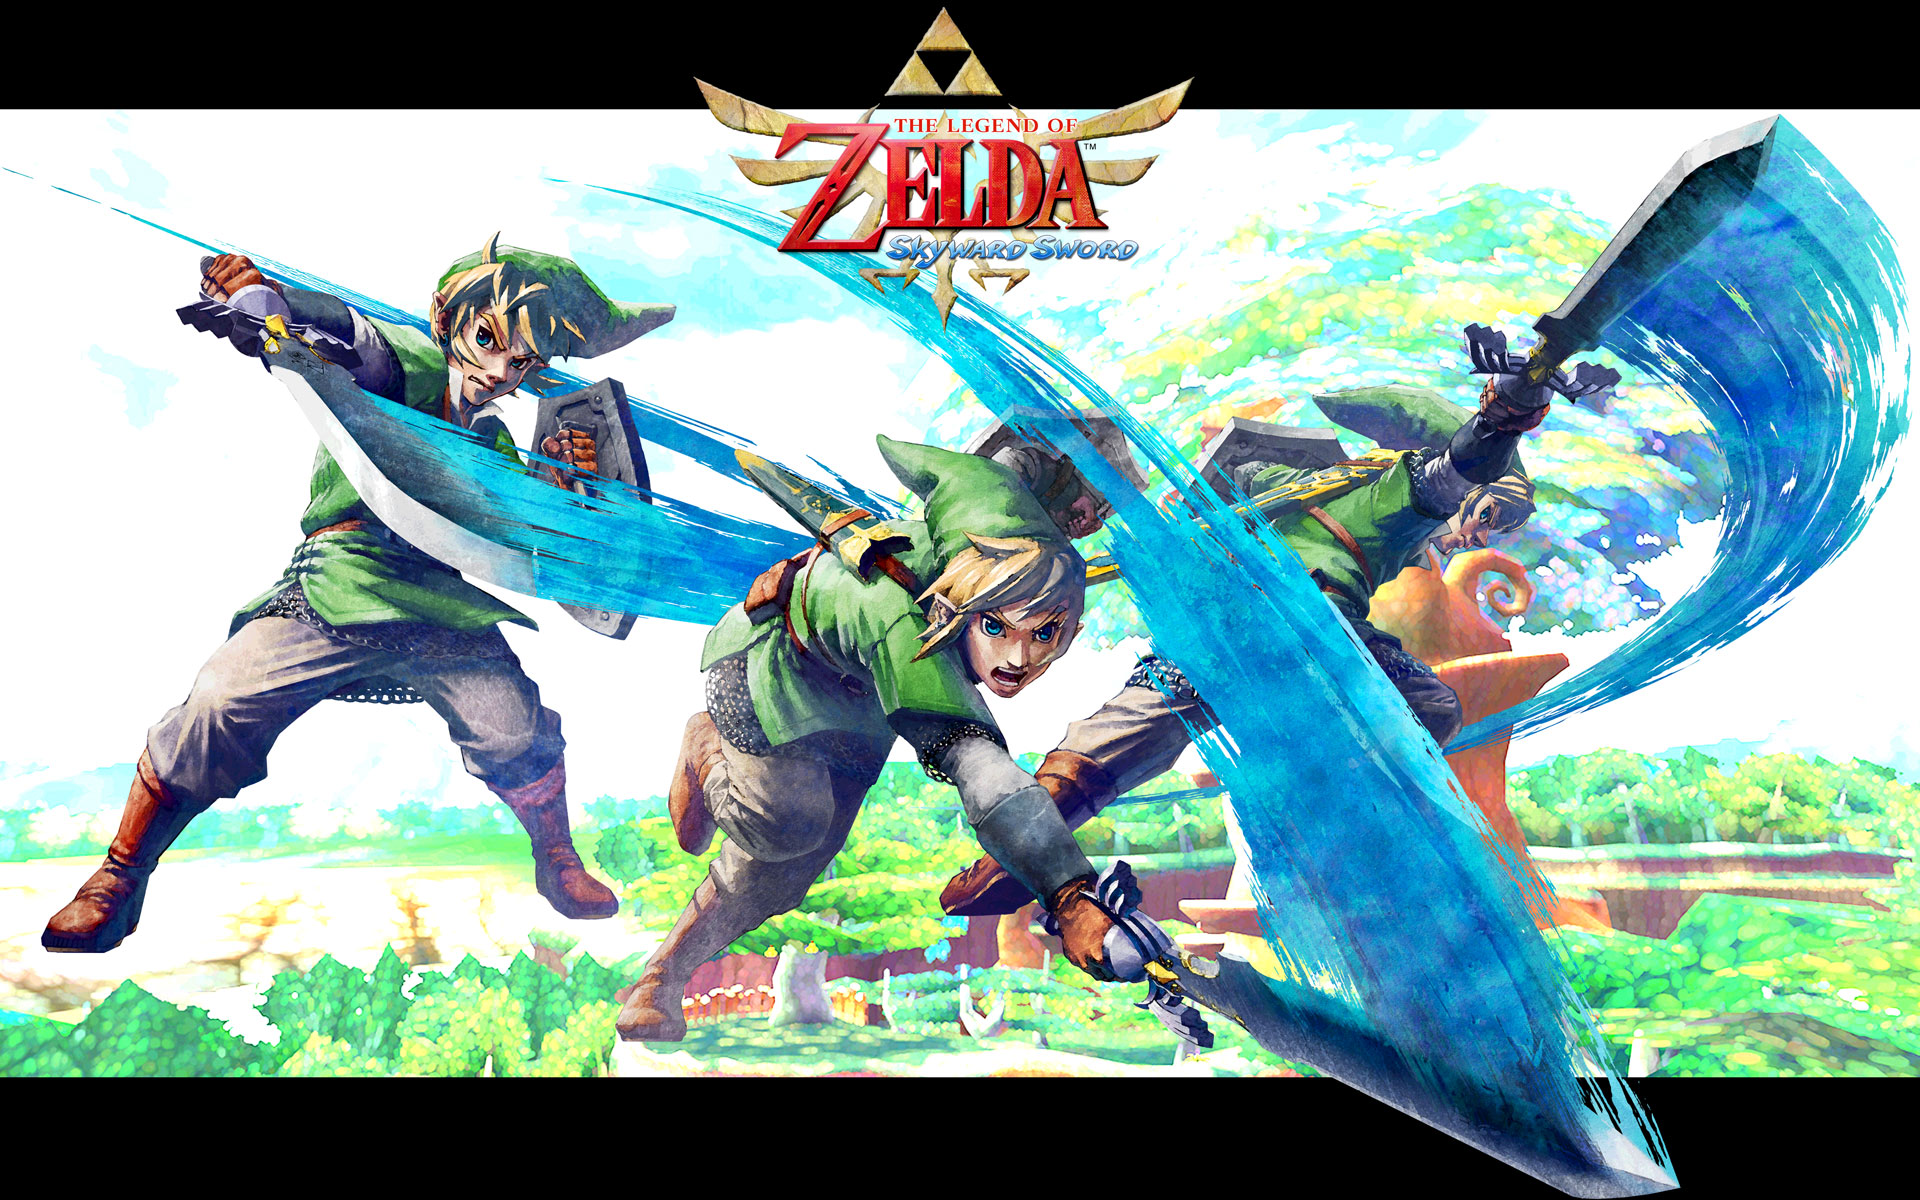 Zelda Skyward Sword Wallpapers in HD Page 4 1920x1200